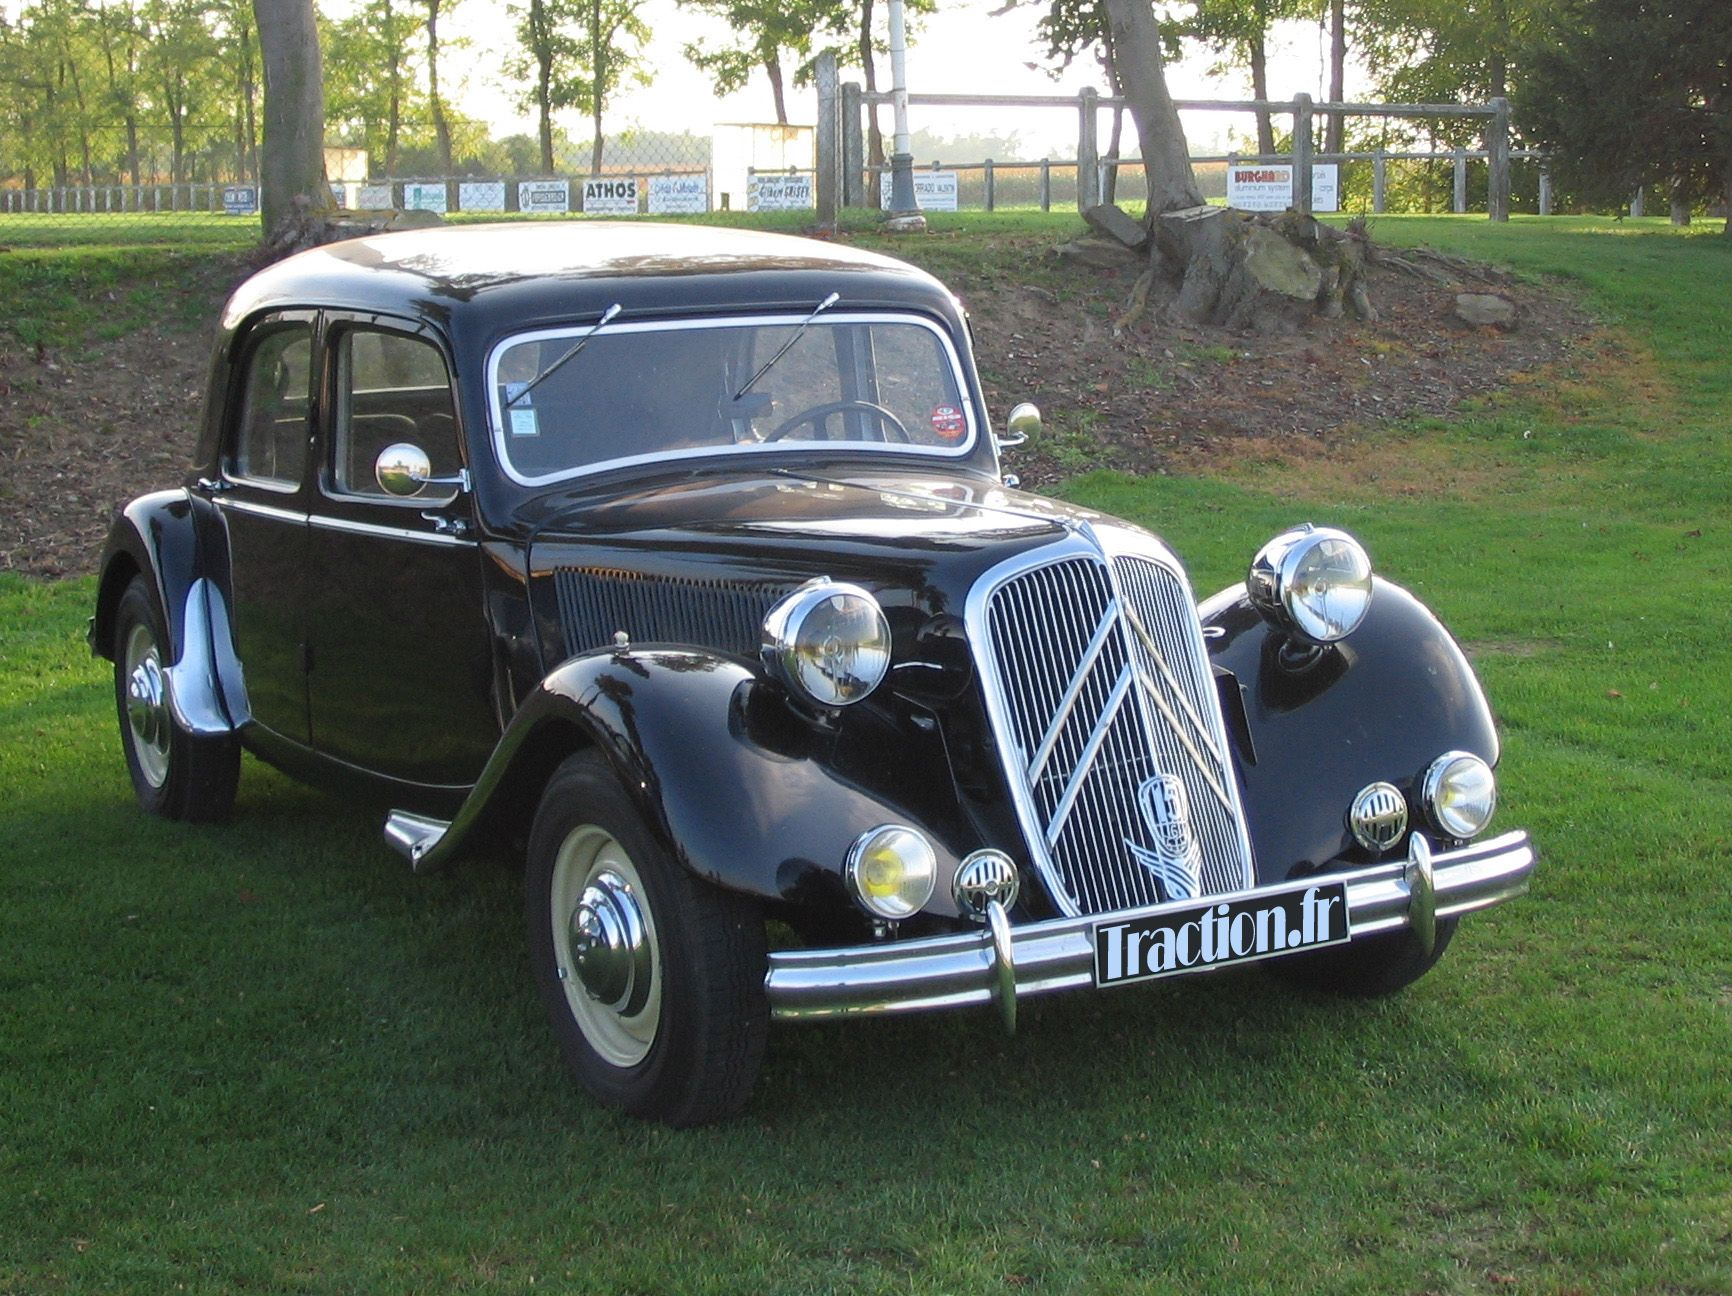 la citro n traction avant de 1934 1957 citroen citroen traction 2cv citro n traction. Black Bedroom Furniture Sets. Home Design Ideas